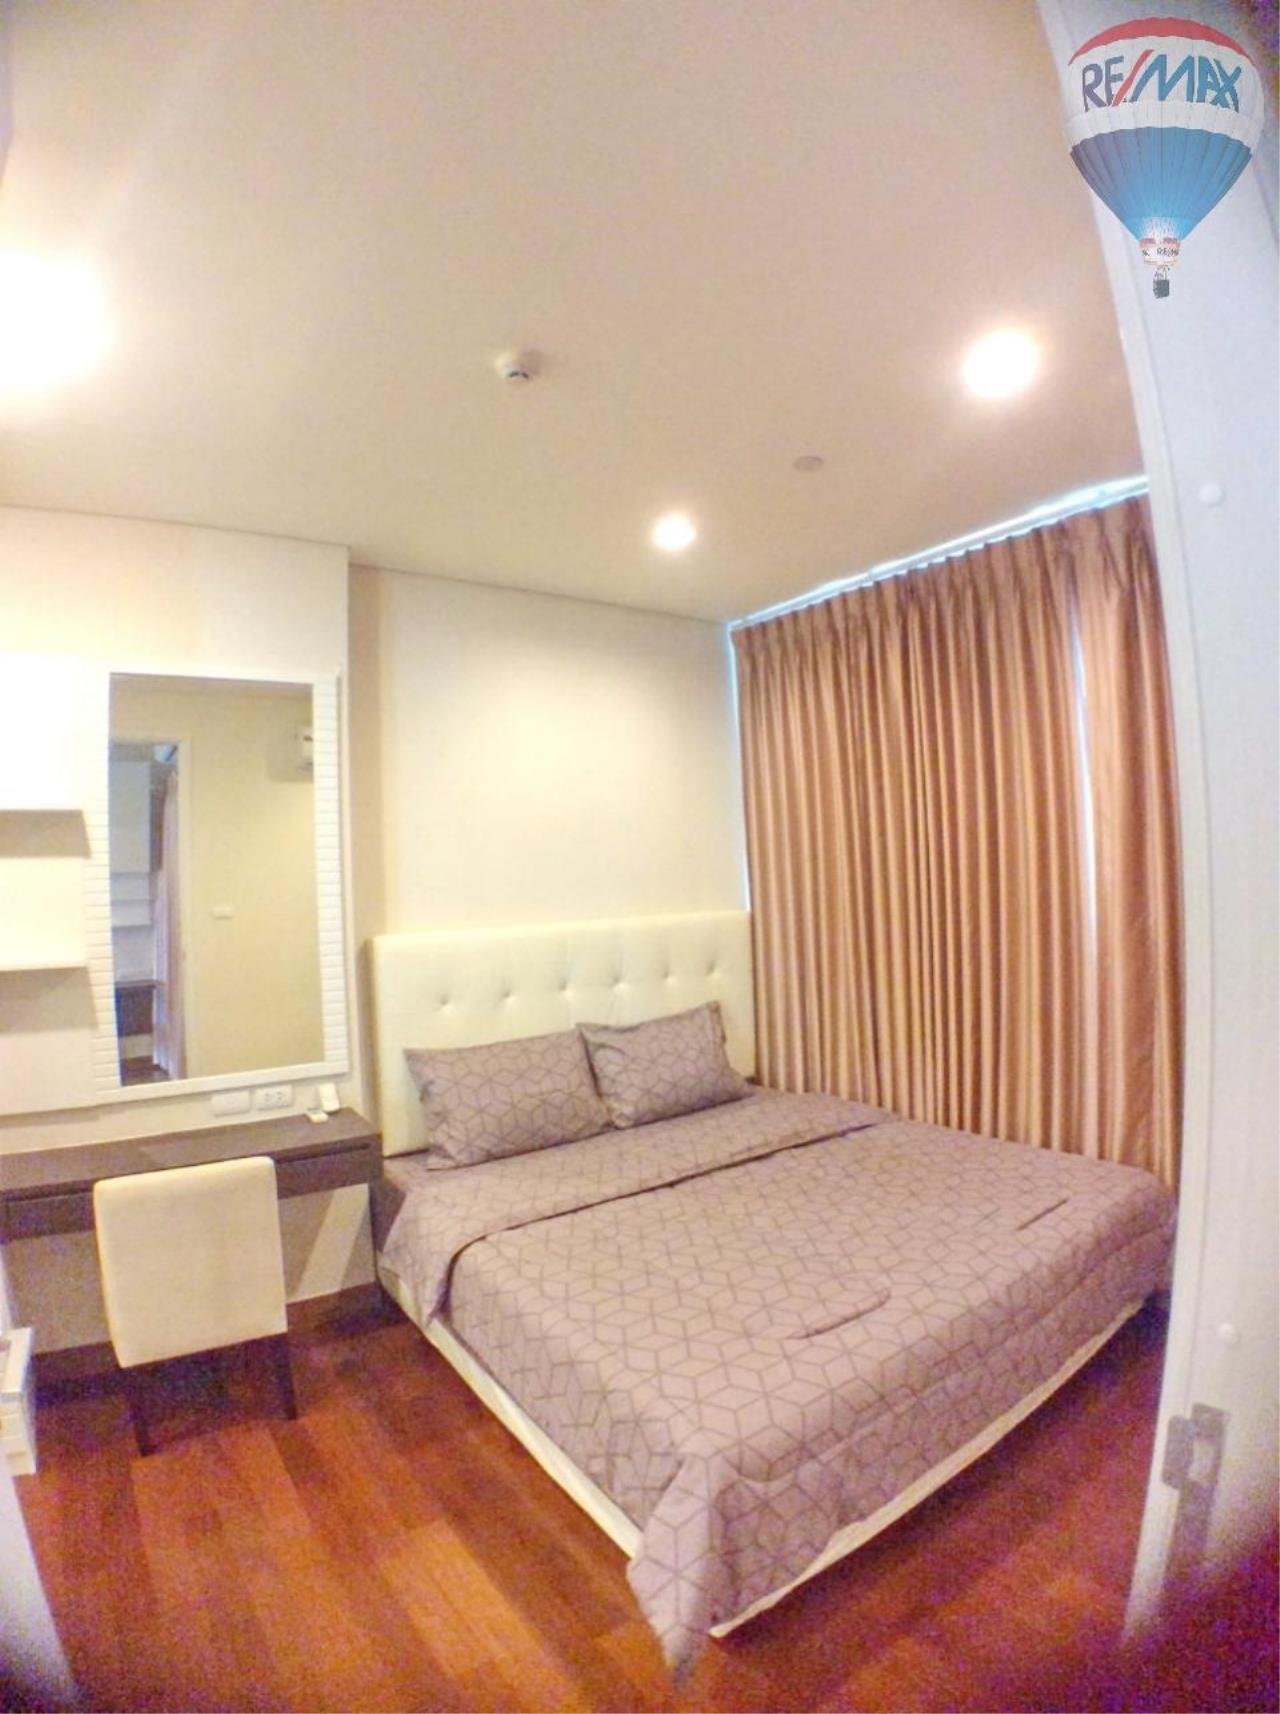 RE/MAX BestLife Agency's Ivy Thonglor 1 bedroom 1 bathroom condo for rent Thonglor BTS 6